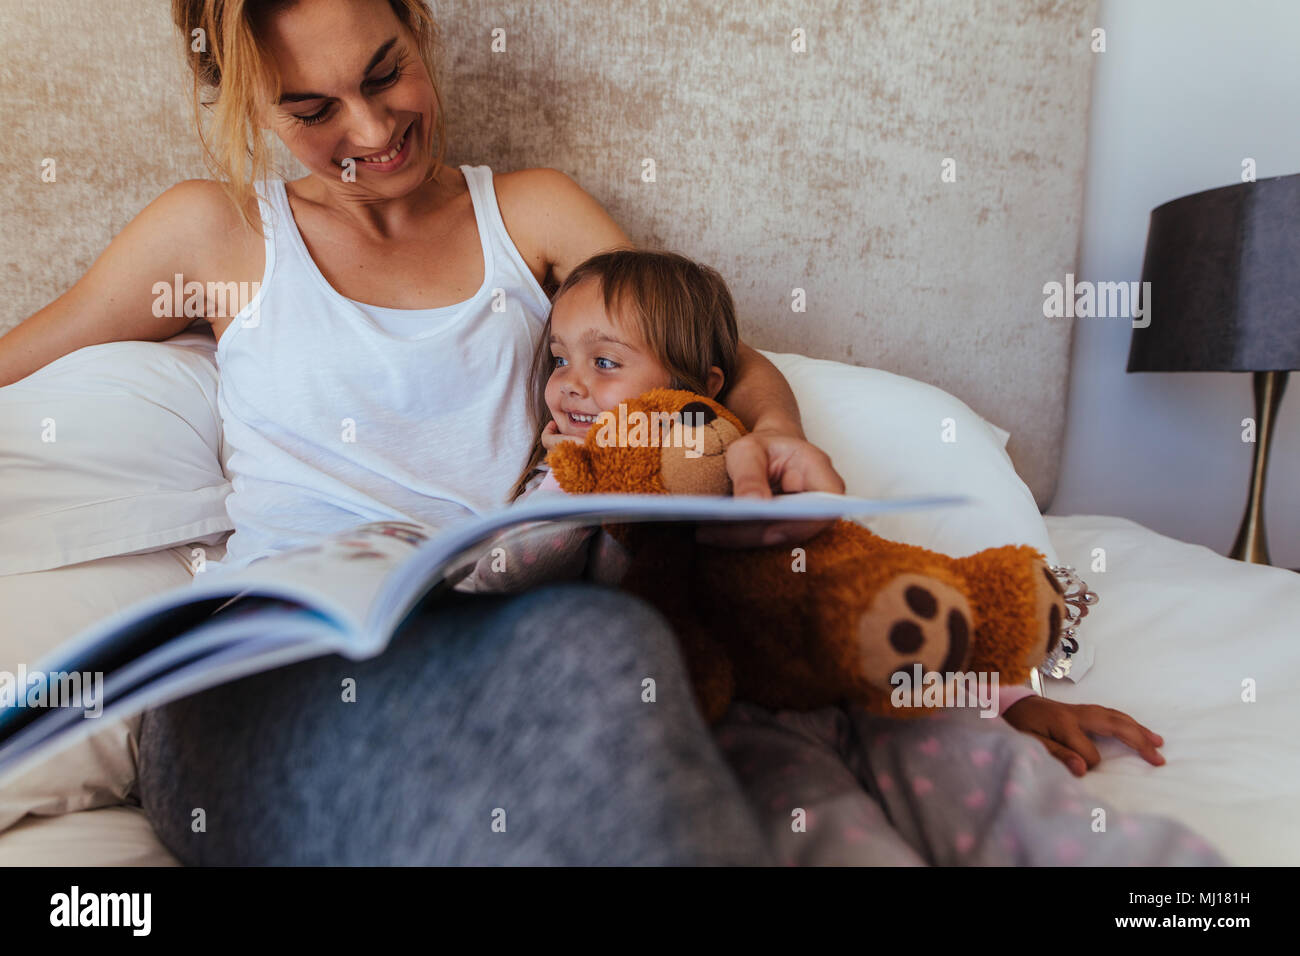 Happy family reading bedtime story in bed. Woman looking at her daughter and smiling while reading a book in bedroom. - Stock Image